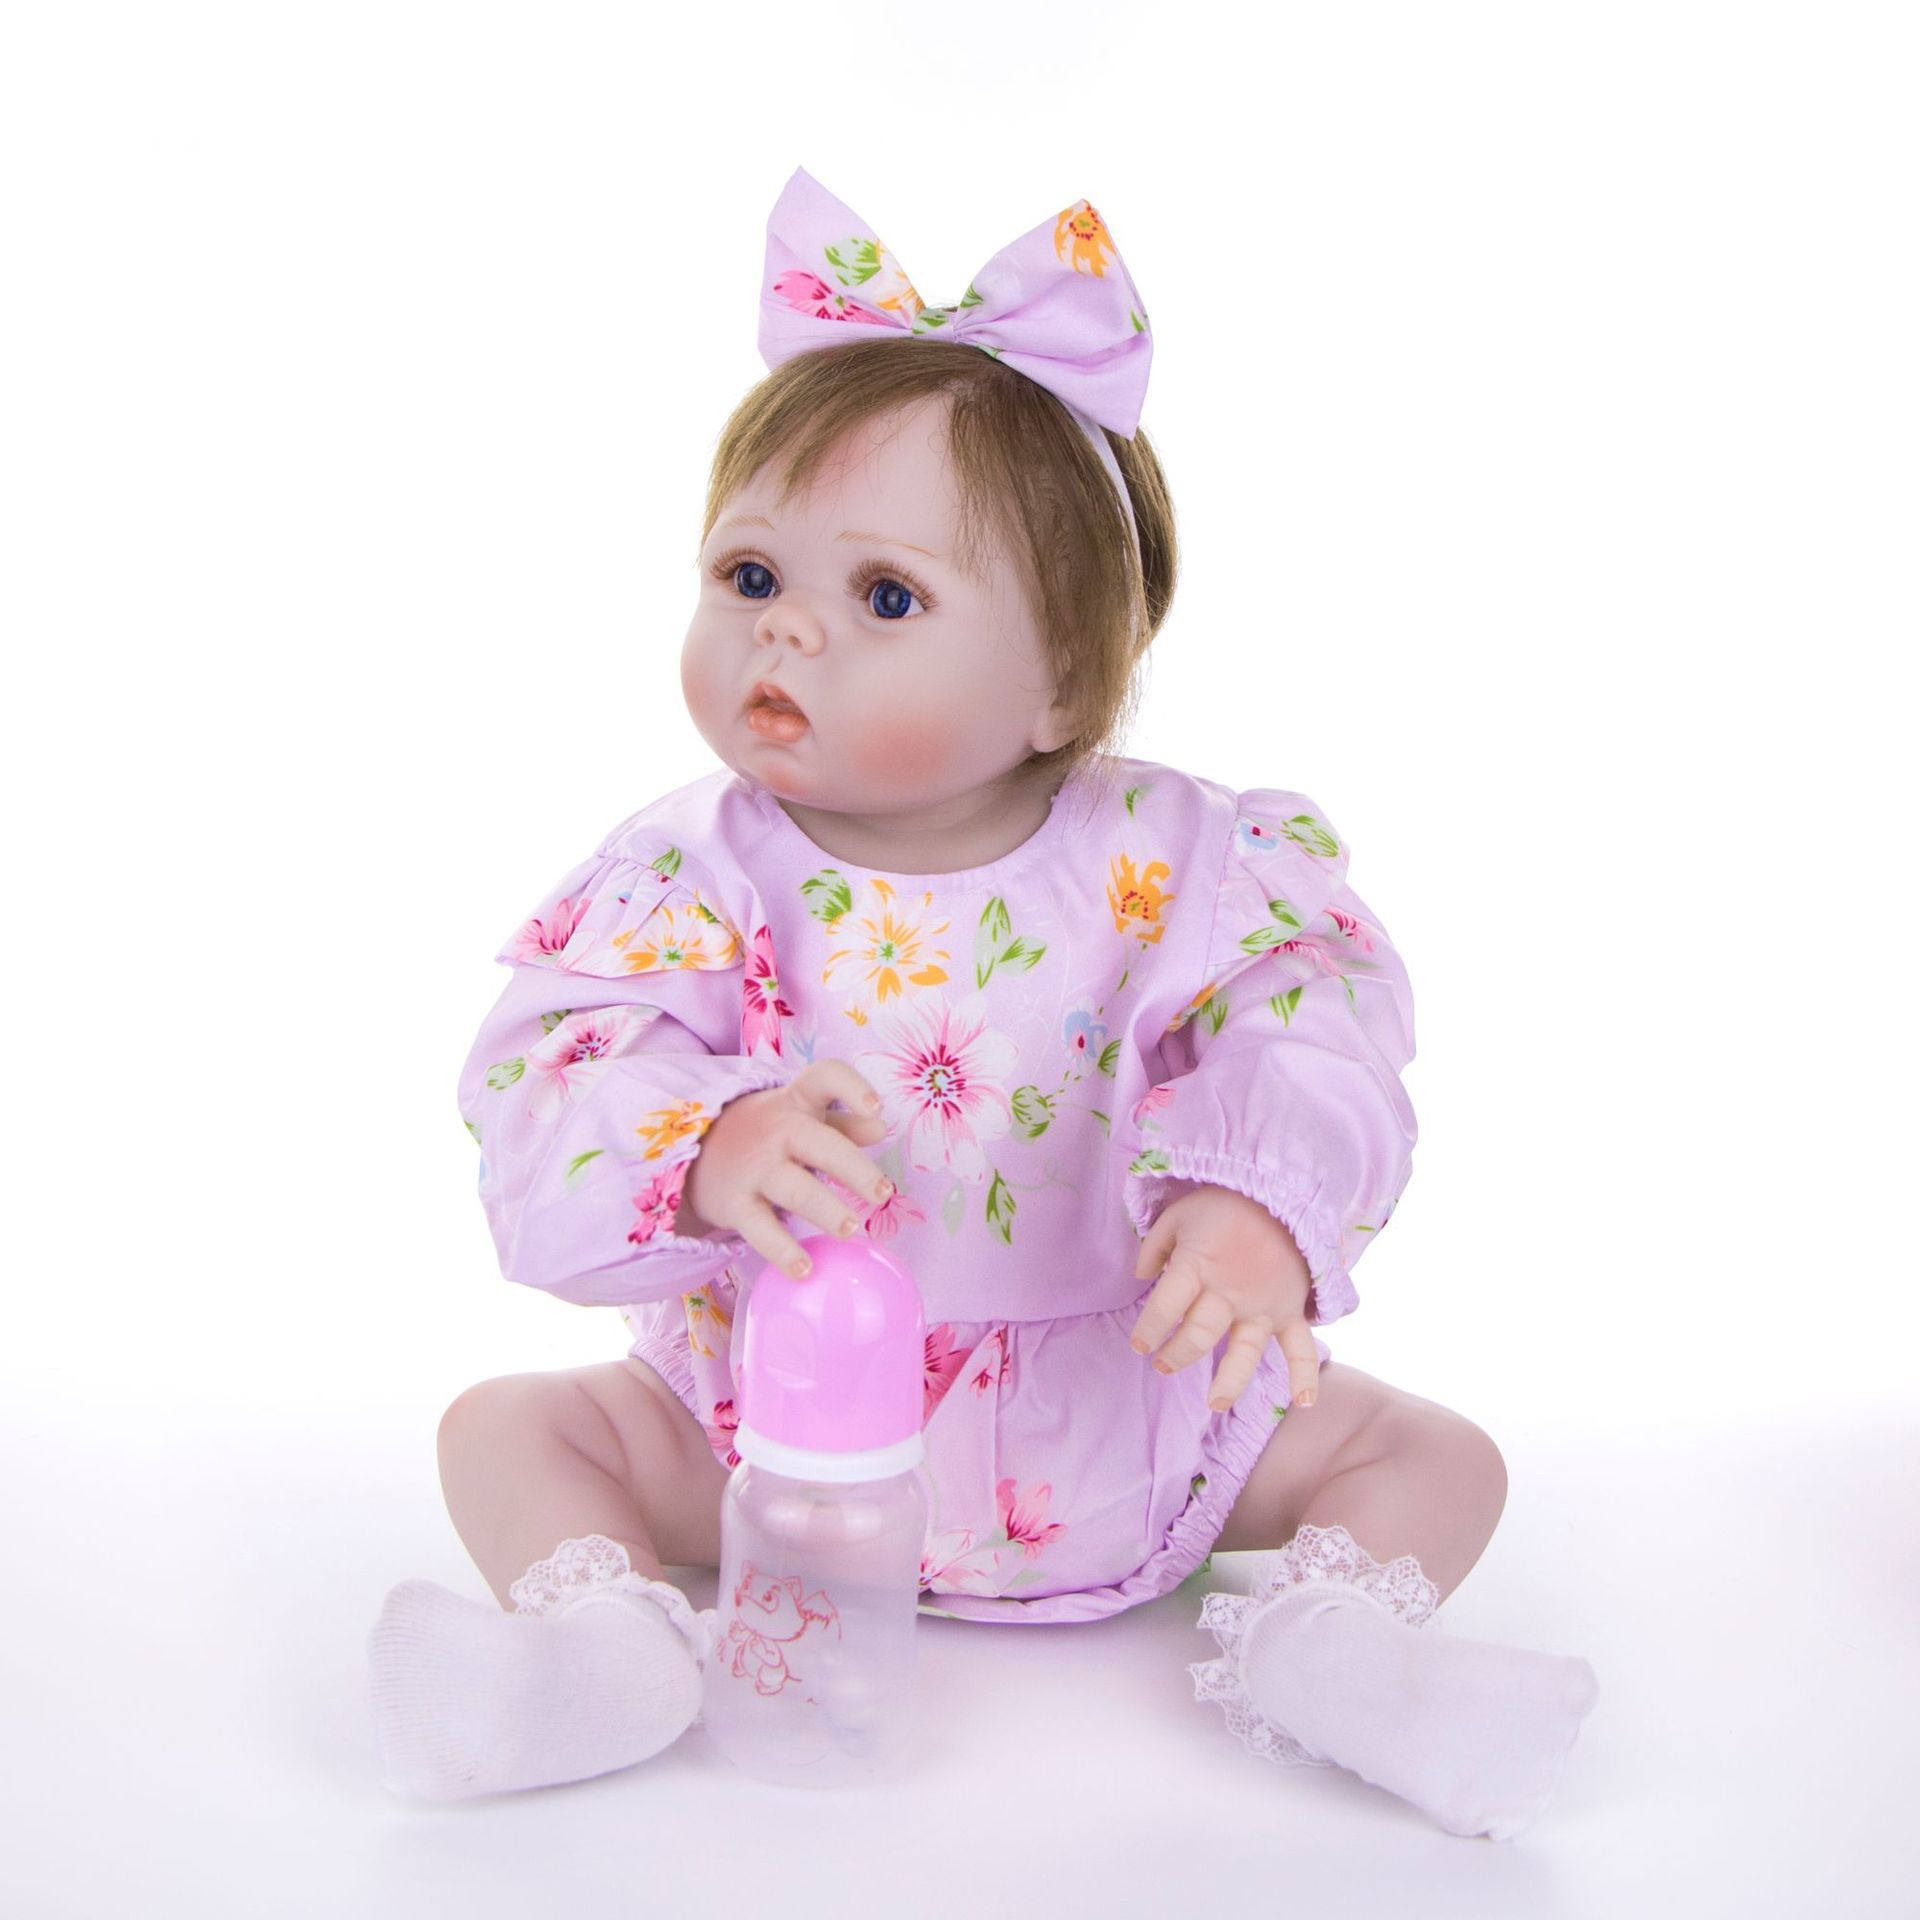 """NPK real baby victoria girl 23"""" full body silicone reborn baby dolls rooted new hair bebes reborn kids toy gift bonecas-in Dolls from Toys & Hobbies    1"""